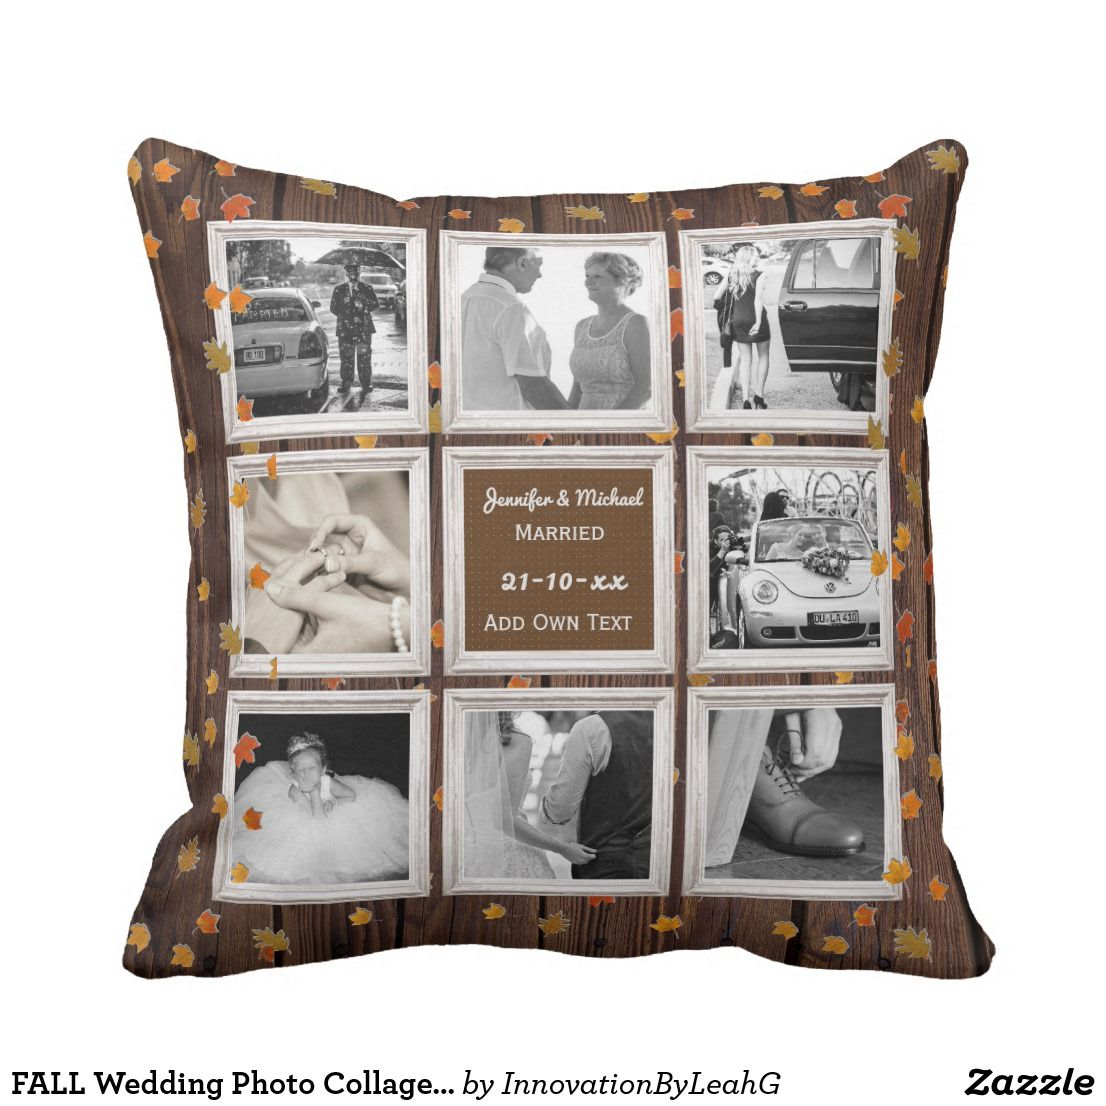 Fall wedding photo collage or anniversary rustic throw pillow gift